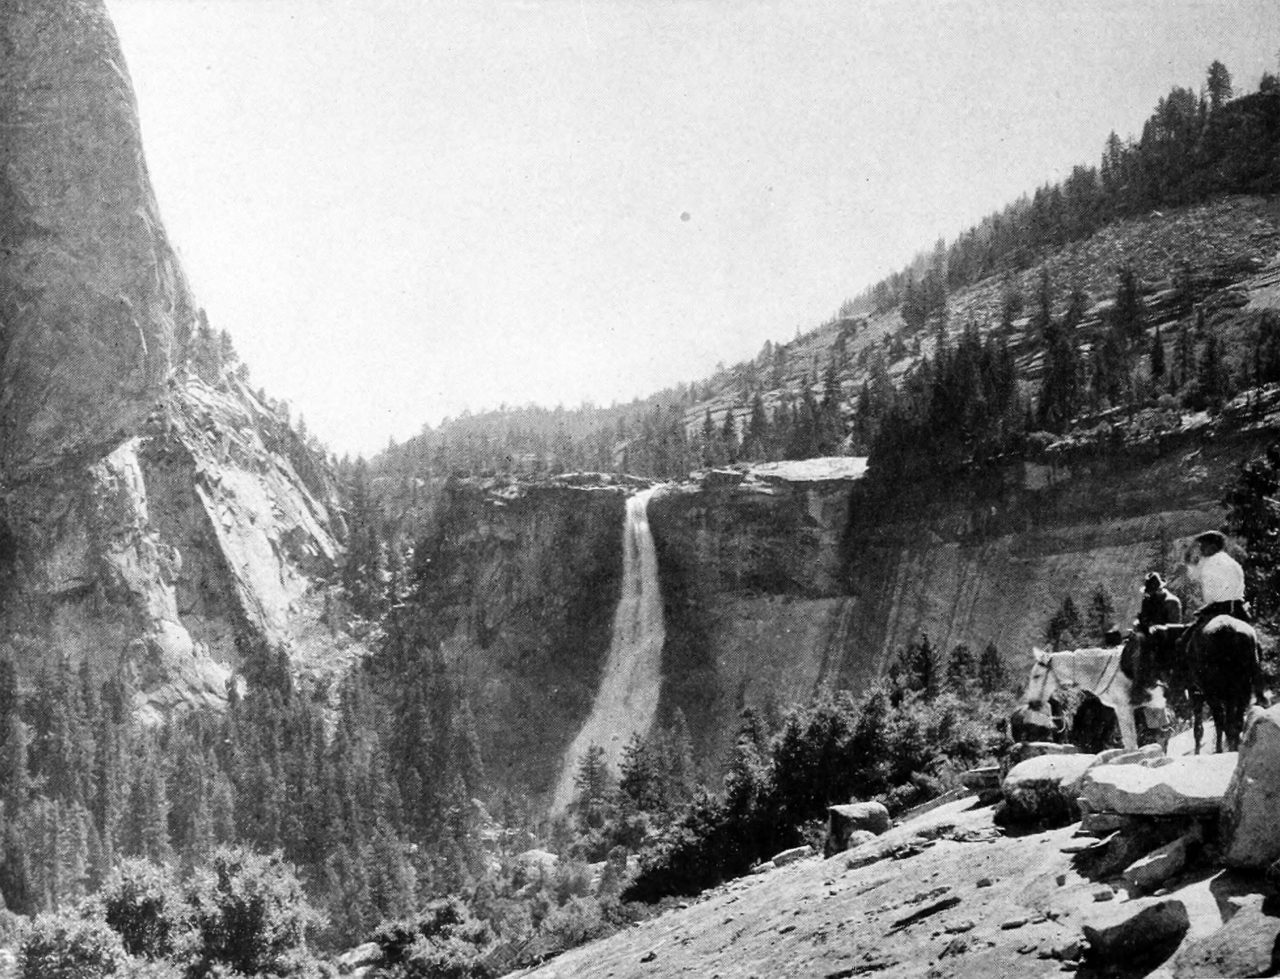 Nevada_Fall,_Yosemite_National_Park,_California_(1921)